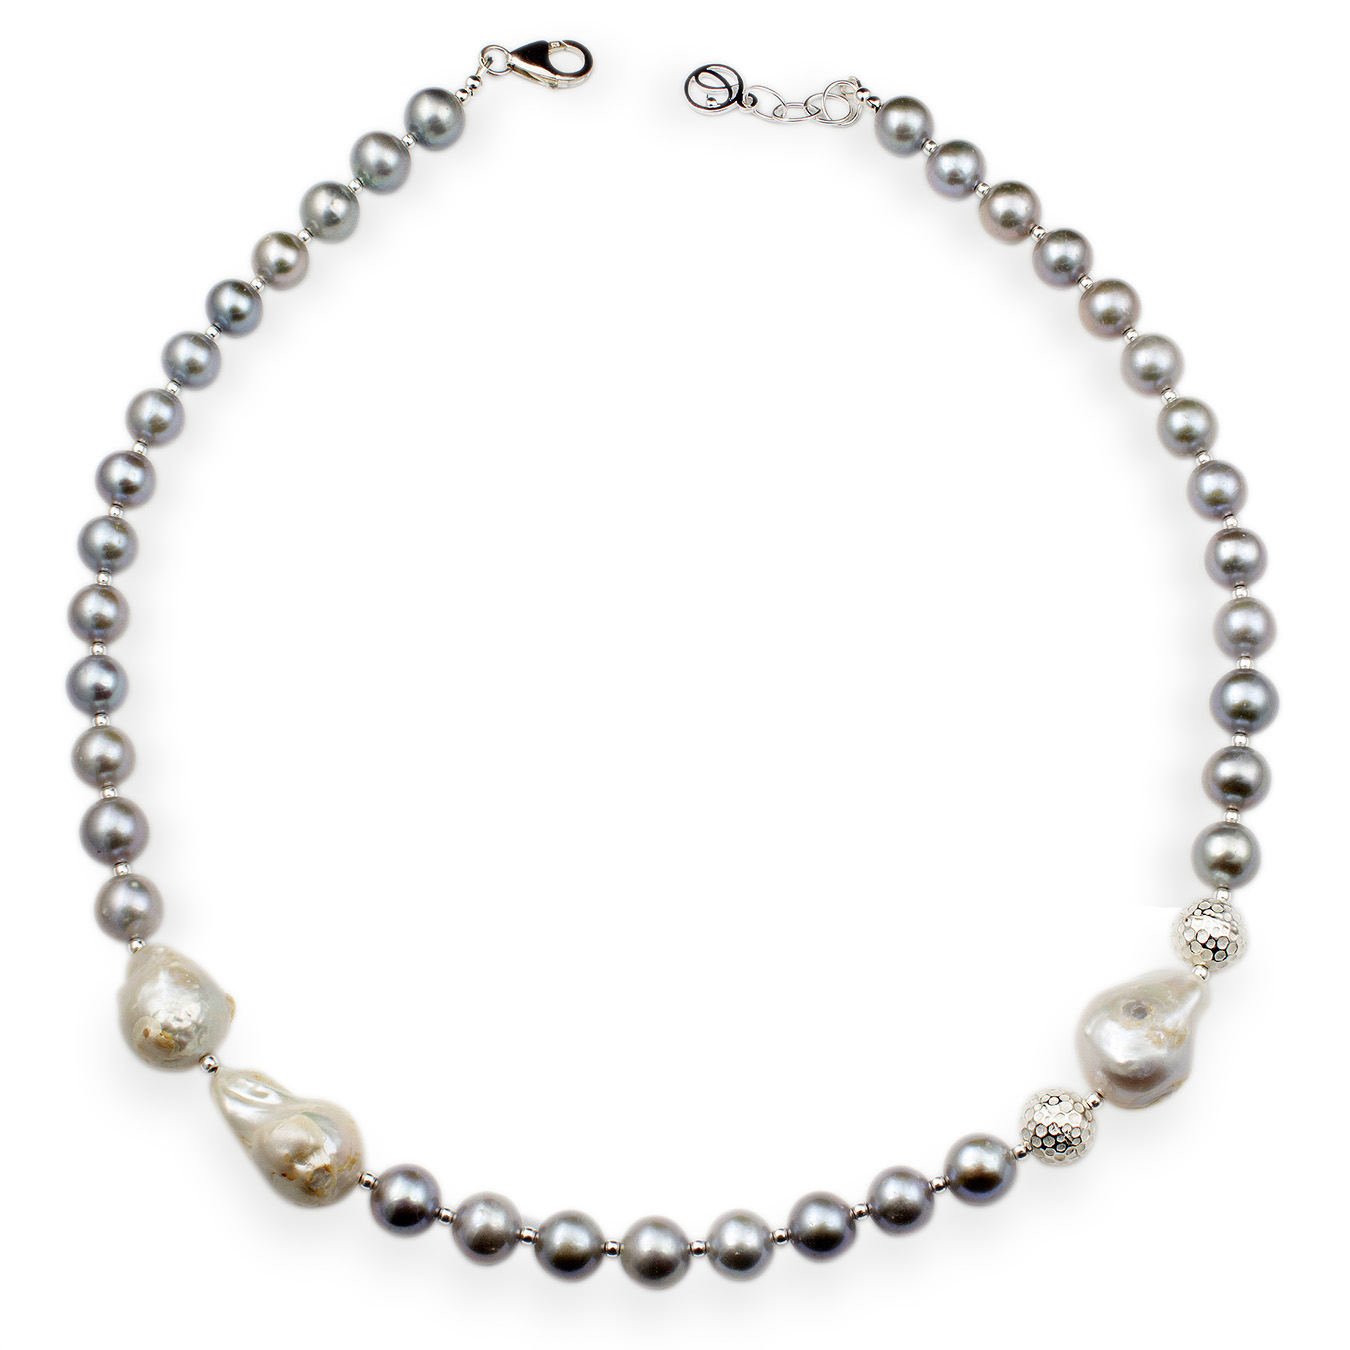 Personalized pearl necklace with choice of round and nucleated pearls